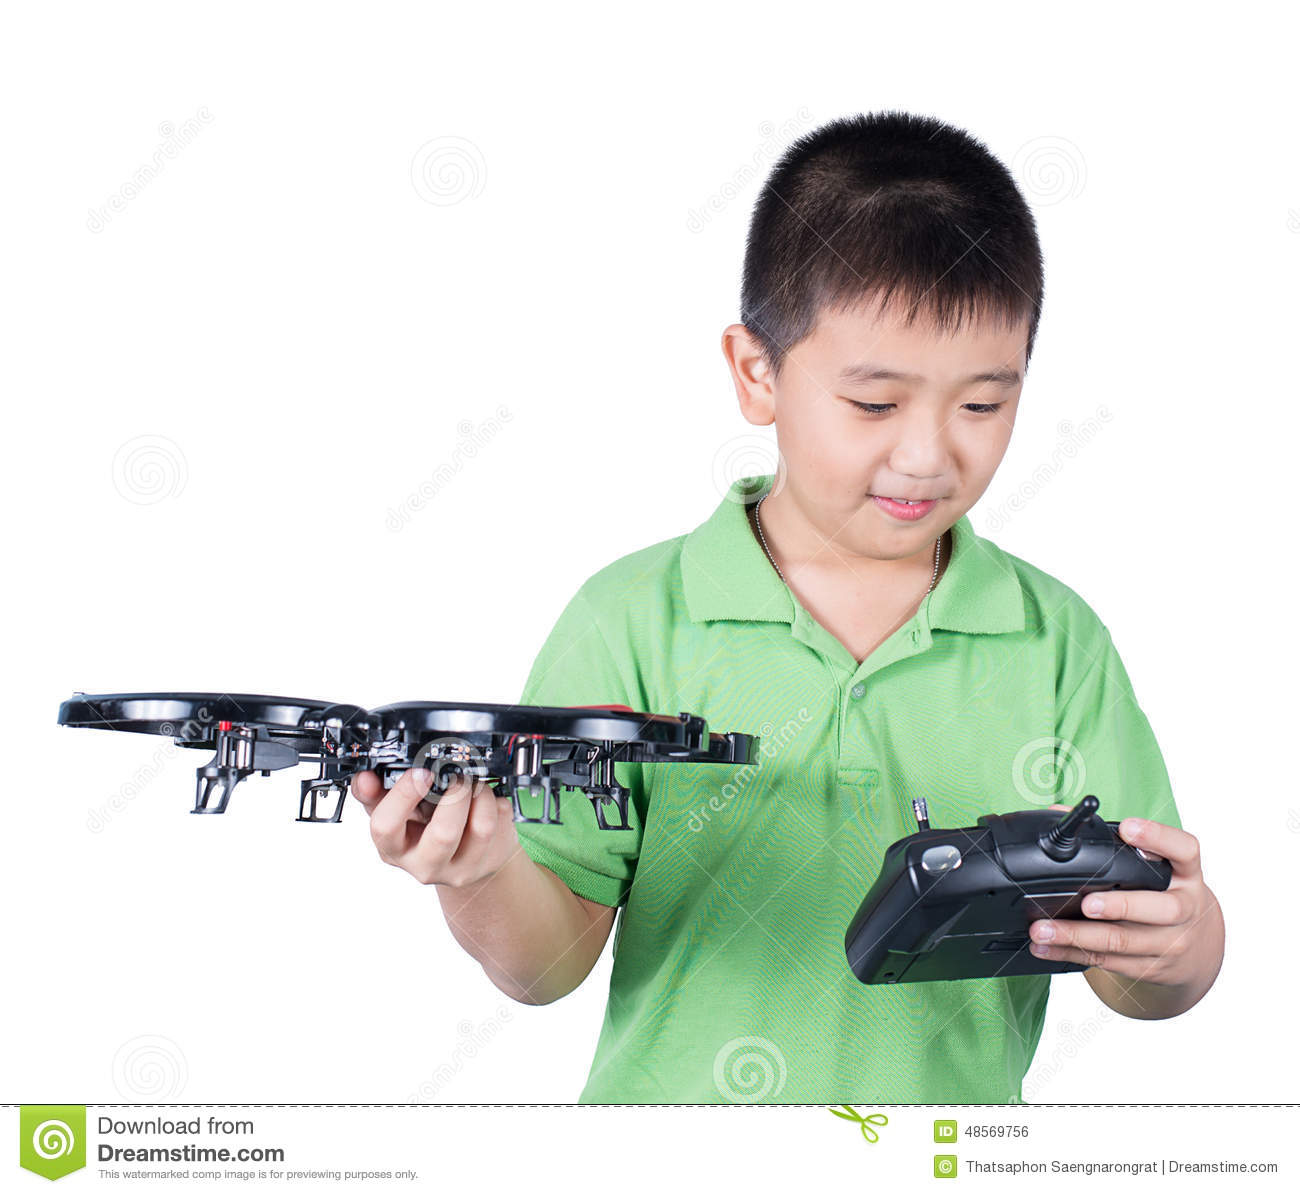 remote controlled toy helicopter with Stock Photo Little Boy Holding Radio Remote Control Controlling Handset Helicopter Drone Plane Isolated White Background Image48569756 on Stock Illustration Man Controlling Flying Drone Quadcopter Clipart Set Human Pictogram Representing Playing Can Be Controlled Remote Image56473039 besides Bruce Jenner Plays Mini Chopper Kardashians Live Ski Trip likewise How To Fly A Drone Quadcopter likewise 82 Tomy Q Train Infrared Remote Control Train Set Qt 06 Tomica Toys Qt06 in addition 4.